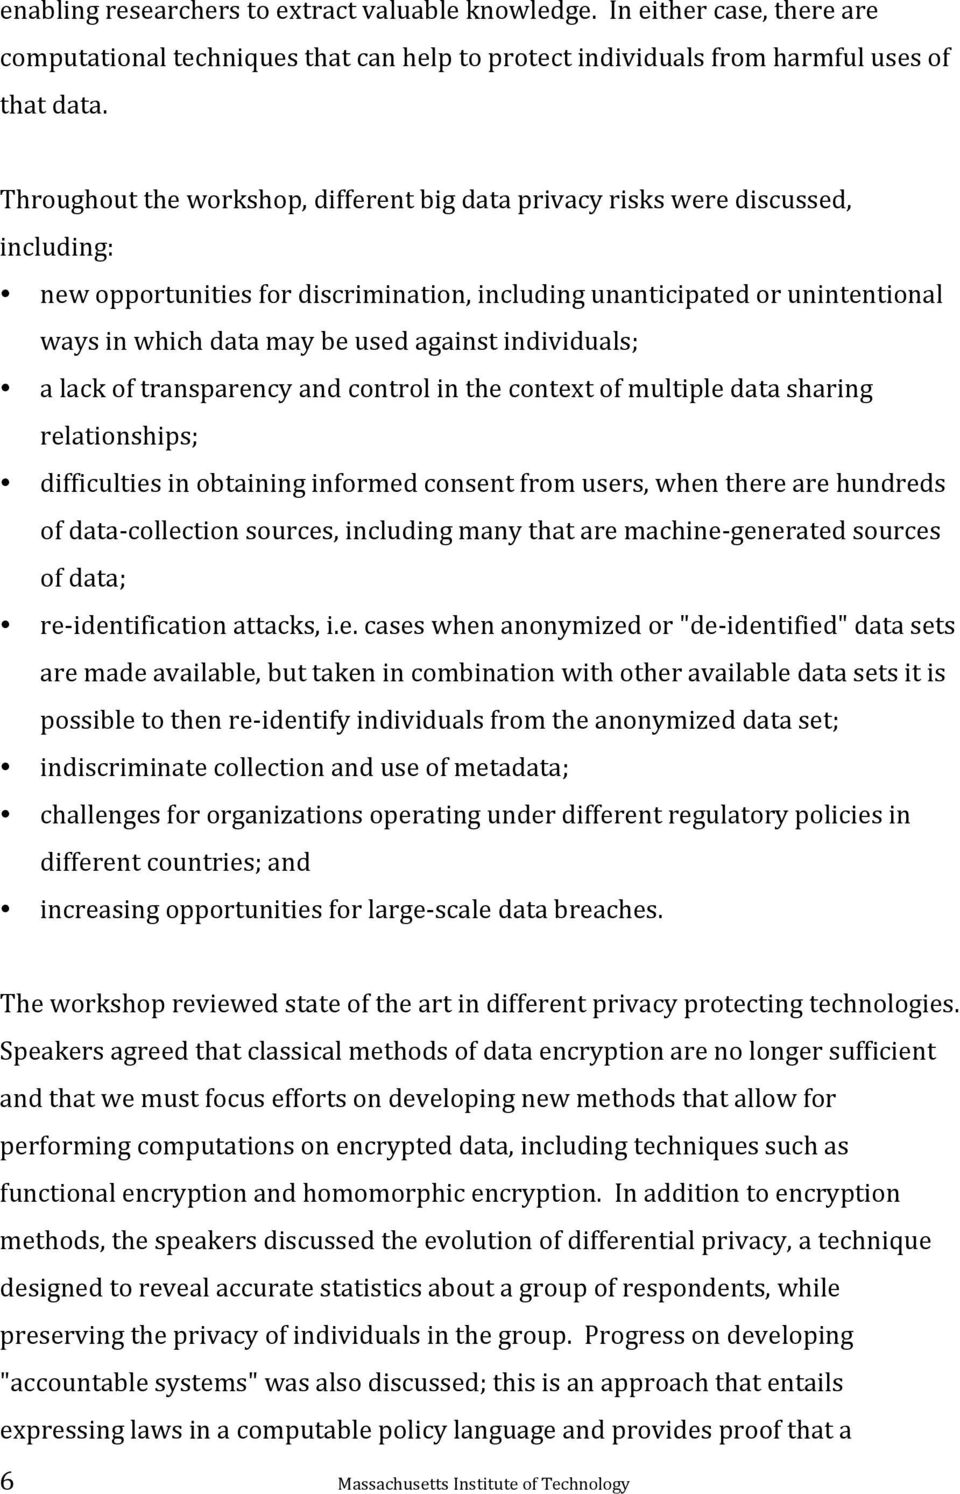 against individuals; a lack of transparency and control in the context of multiple data sharing relationships; difficulties in obtaining informed consent from users, when there are hundreds of data-